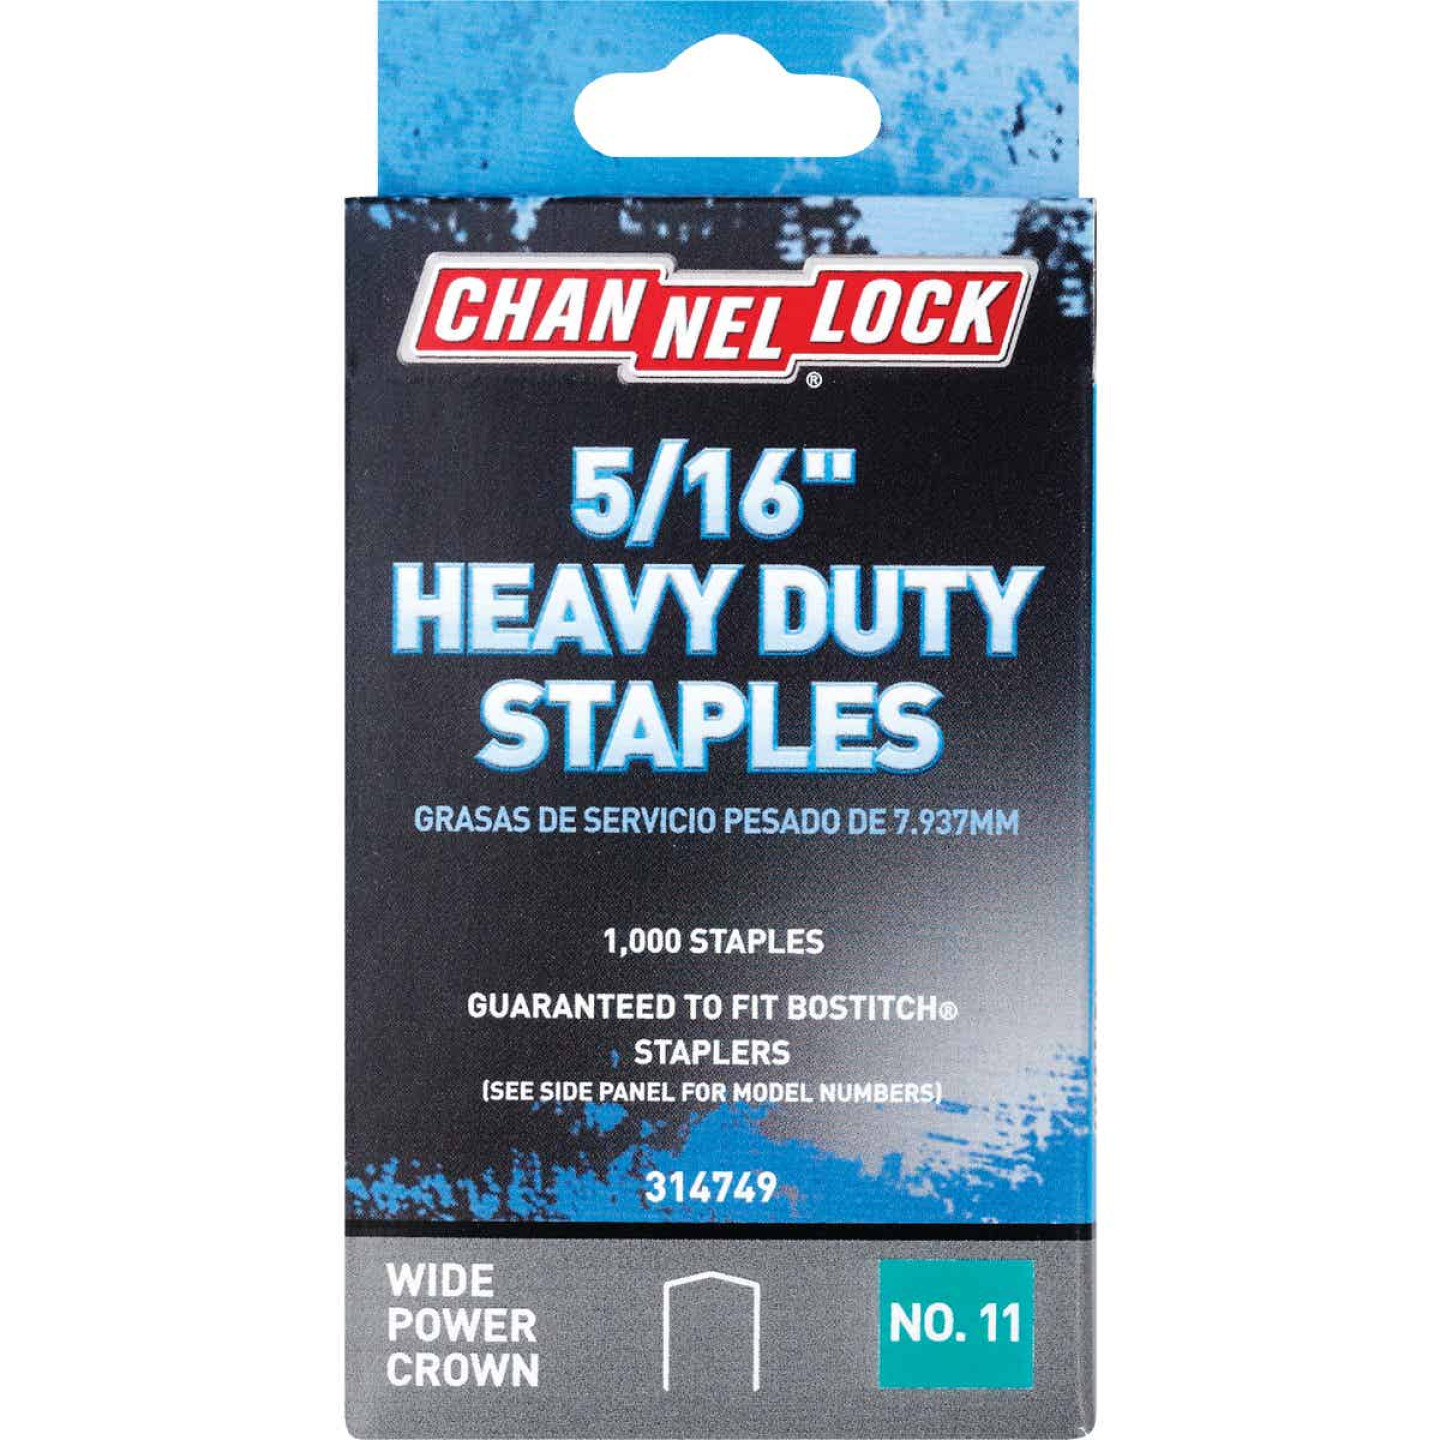 Channellock No. 11 Heavy-Duty Wide Power Crown Staple, 5/16 In. (1000-Pack) Image 1